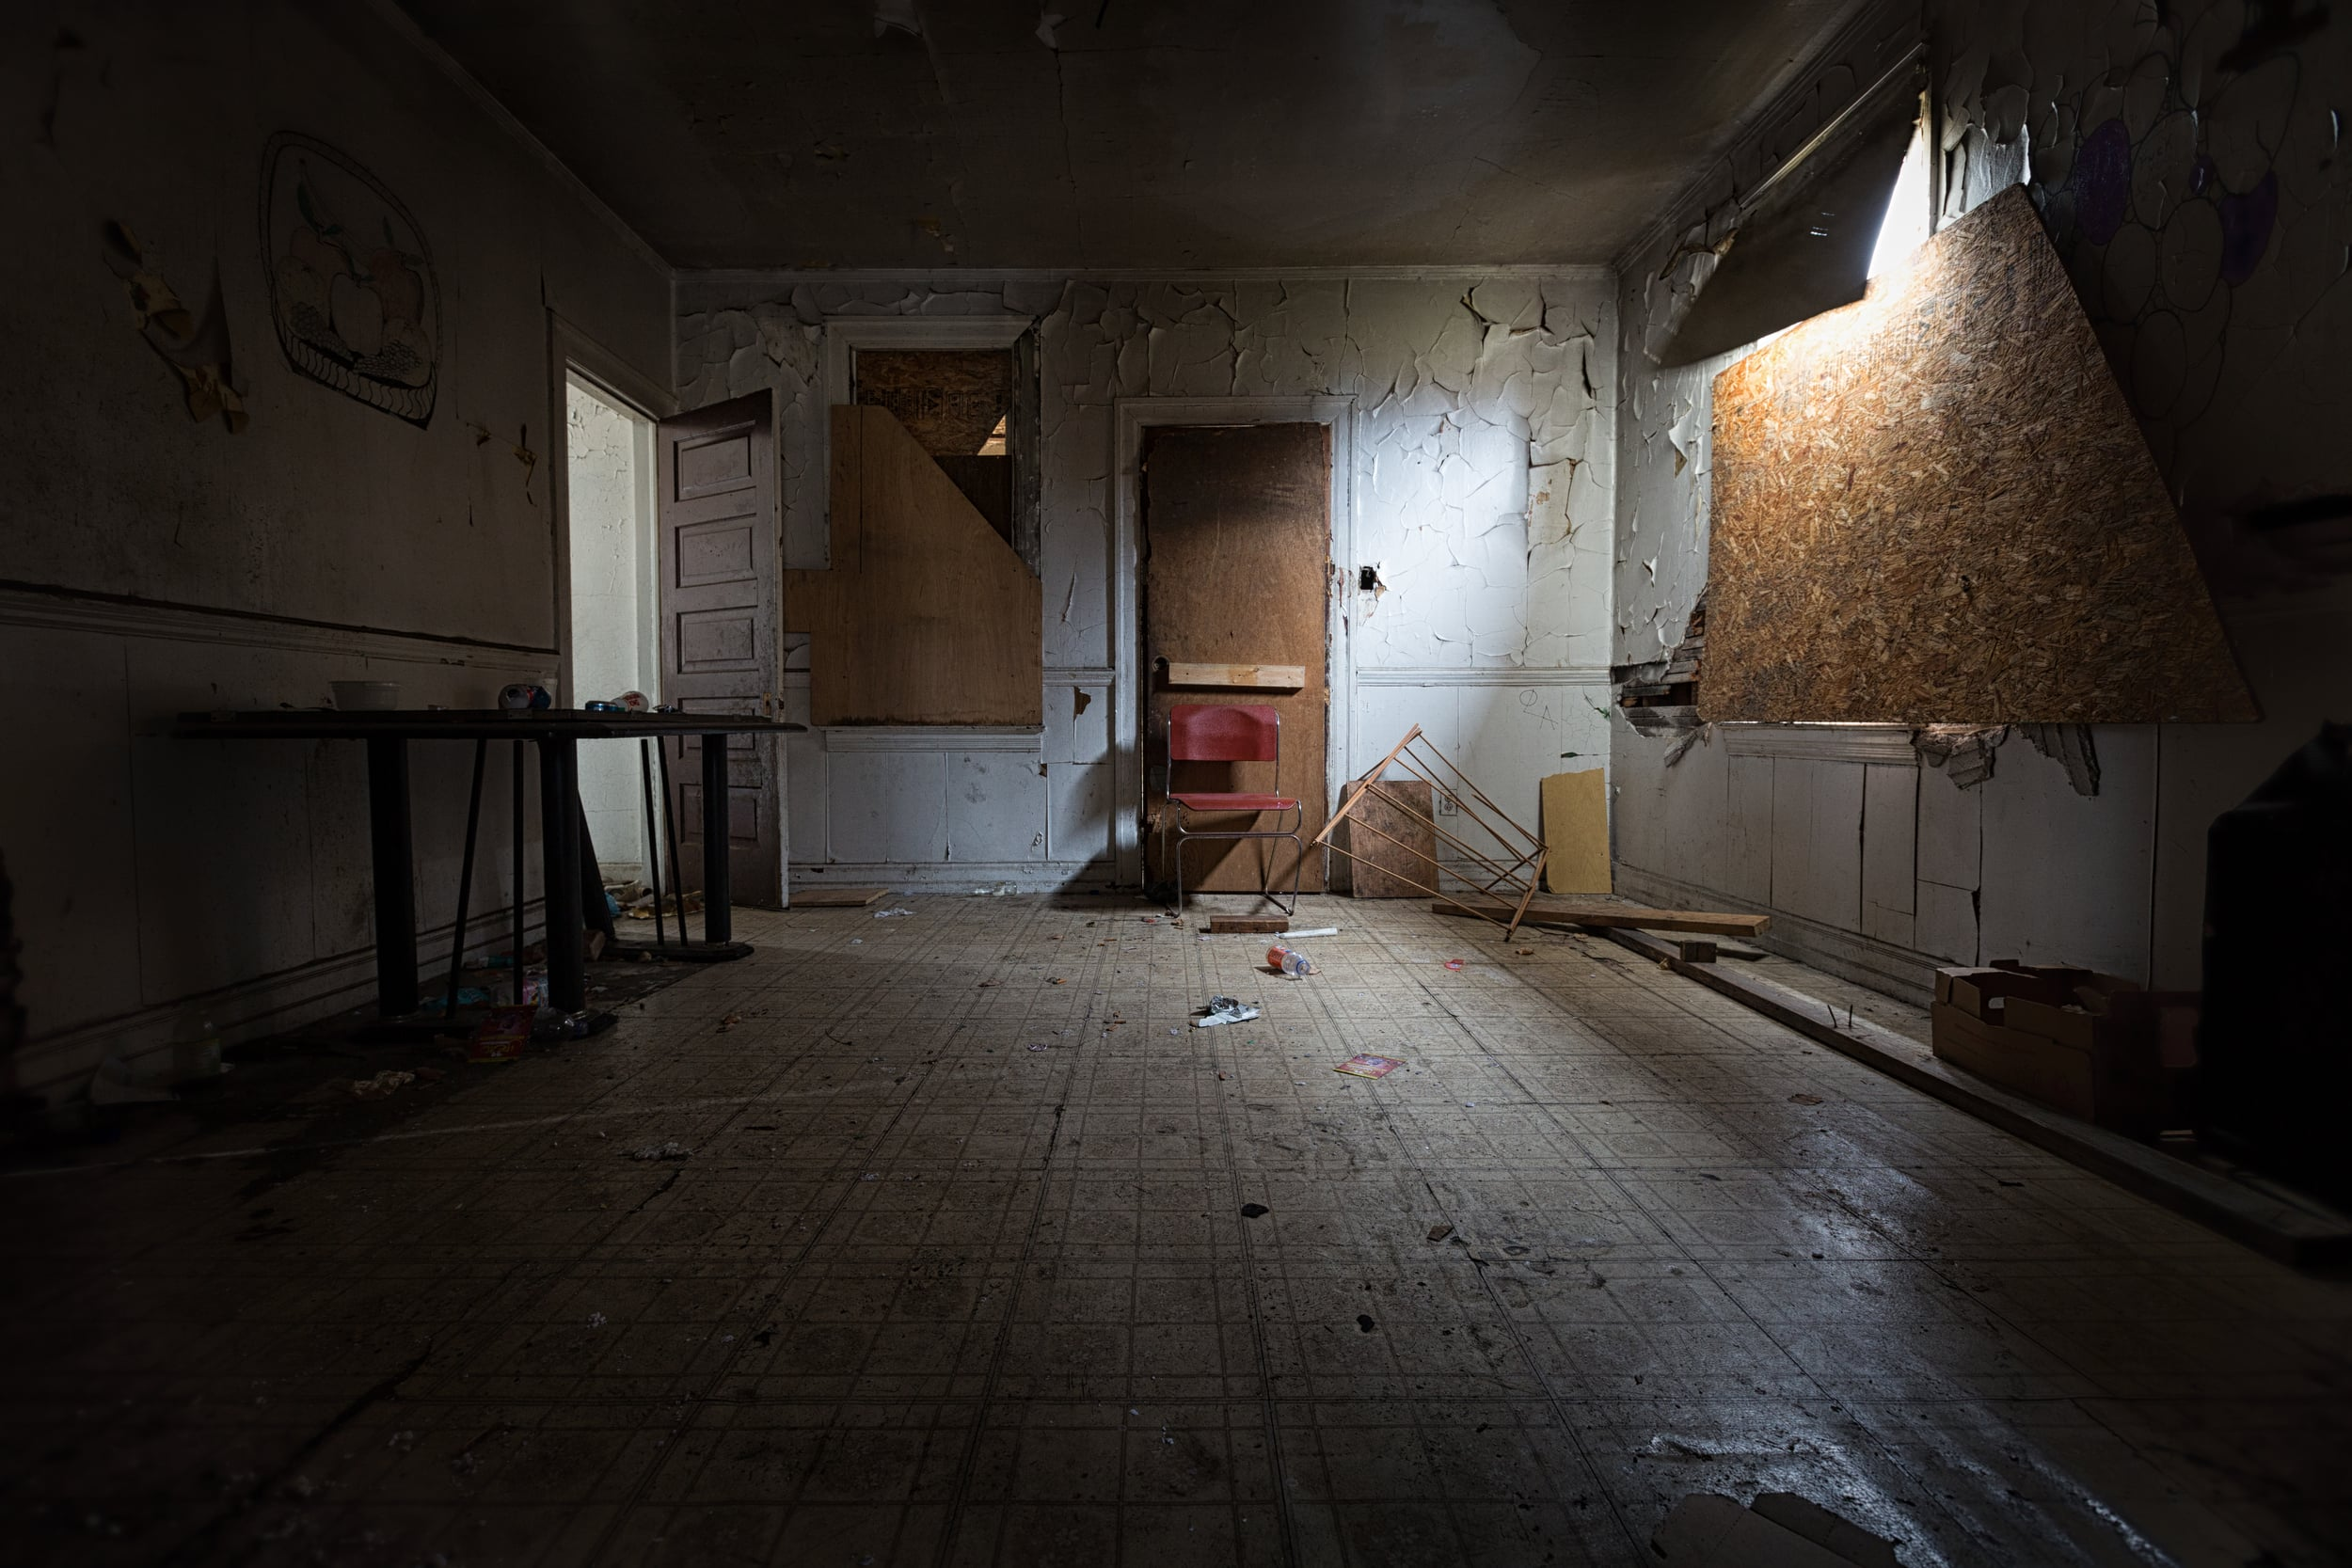 Vacant Detroit Home 2 (1 of 1).jpg